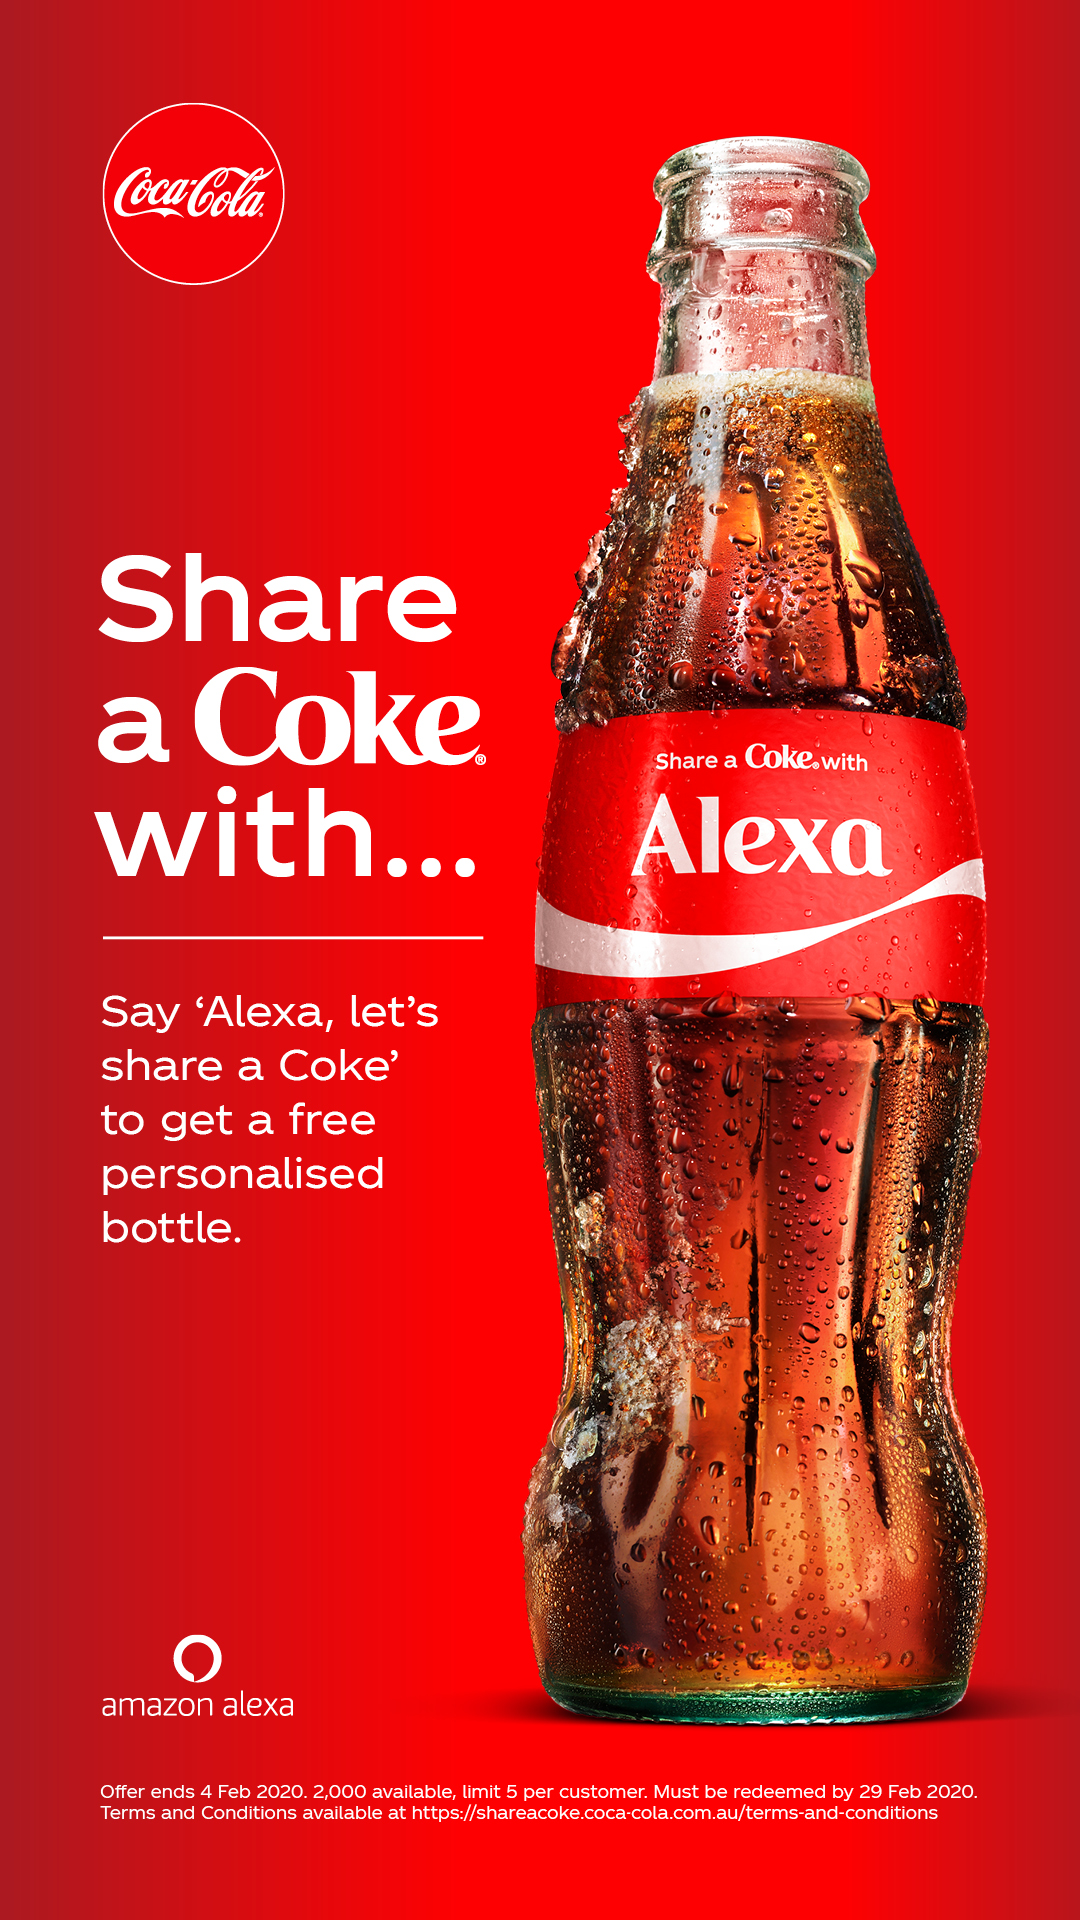 Coke + Amazon Alexa deliver personalised cokes to Aussies' doors in new promo via Ogilvy + VERSA